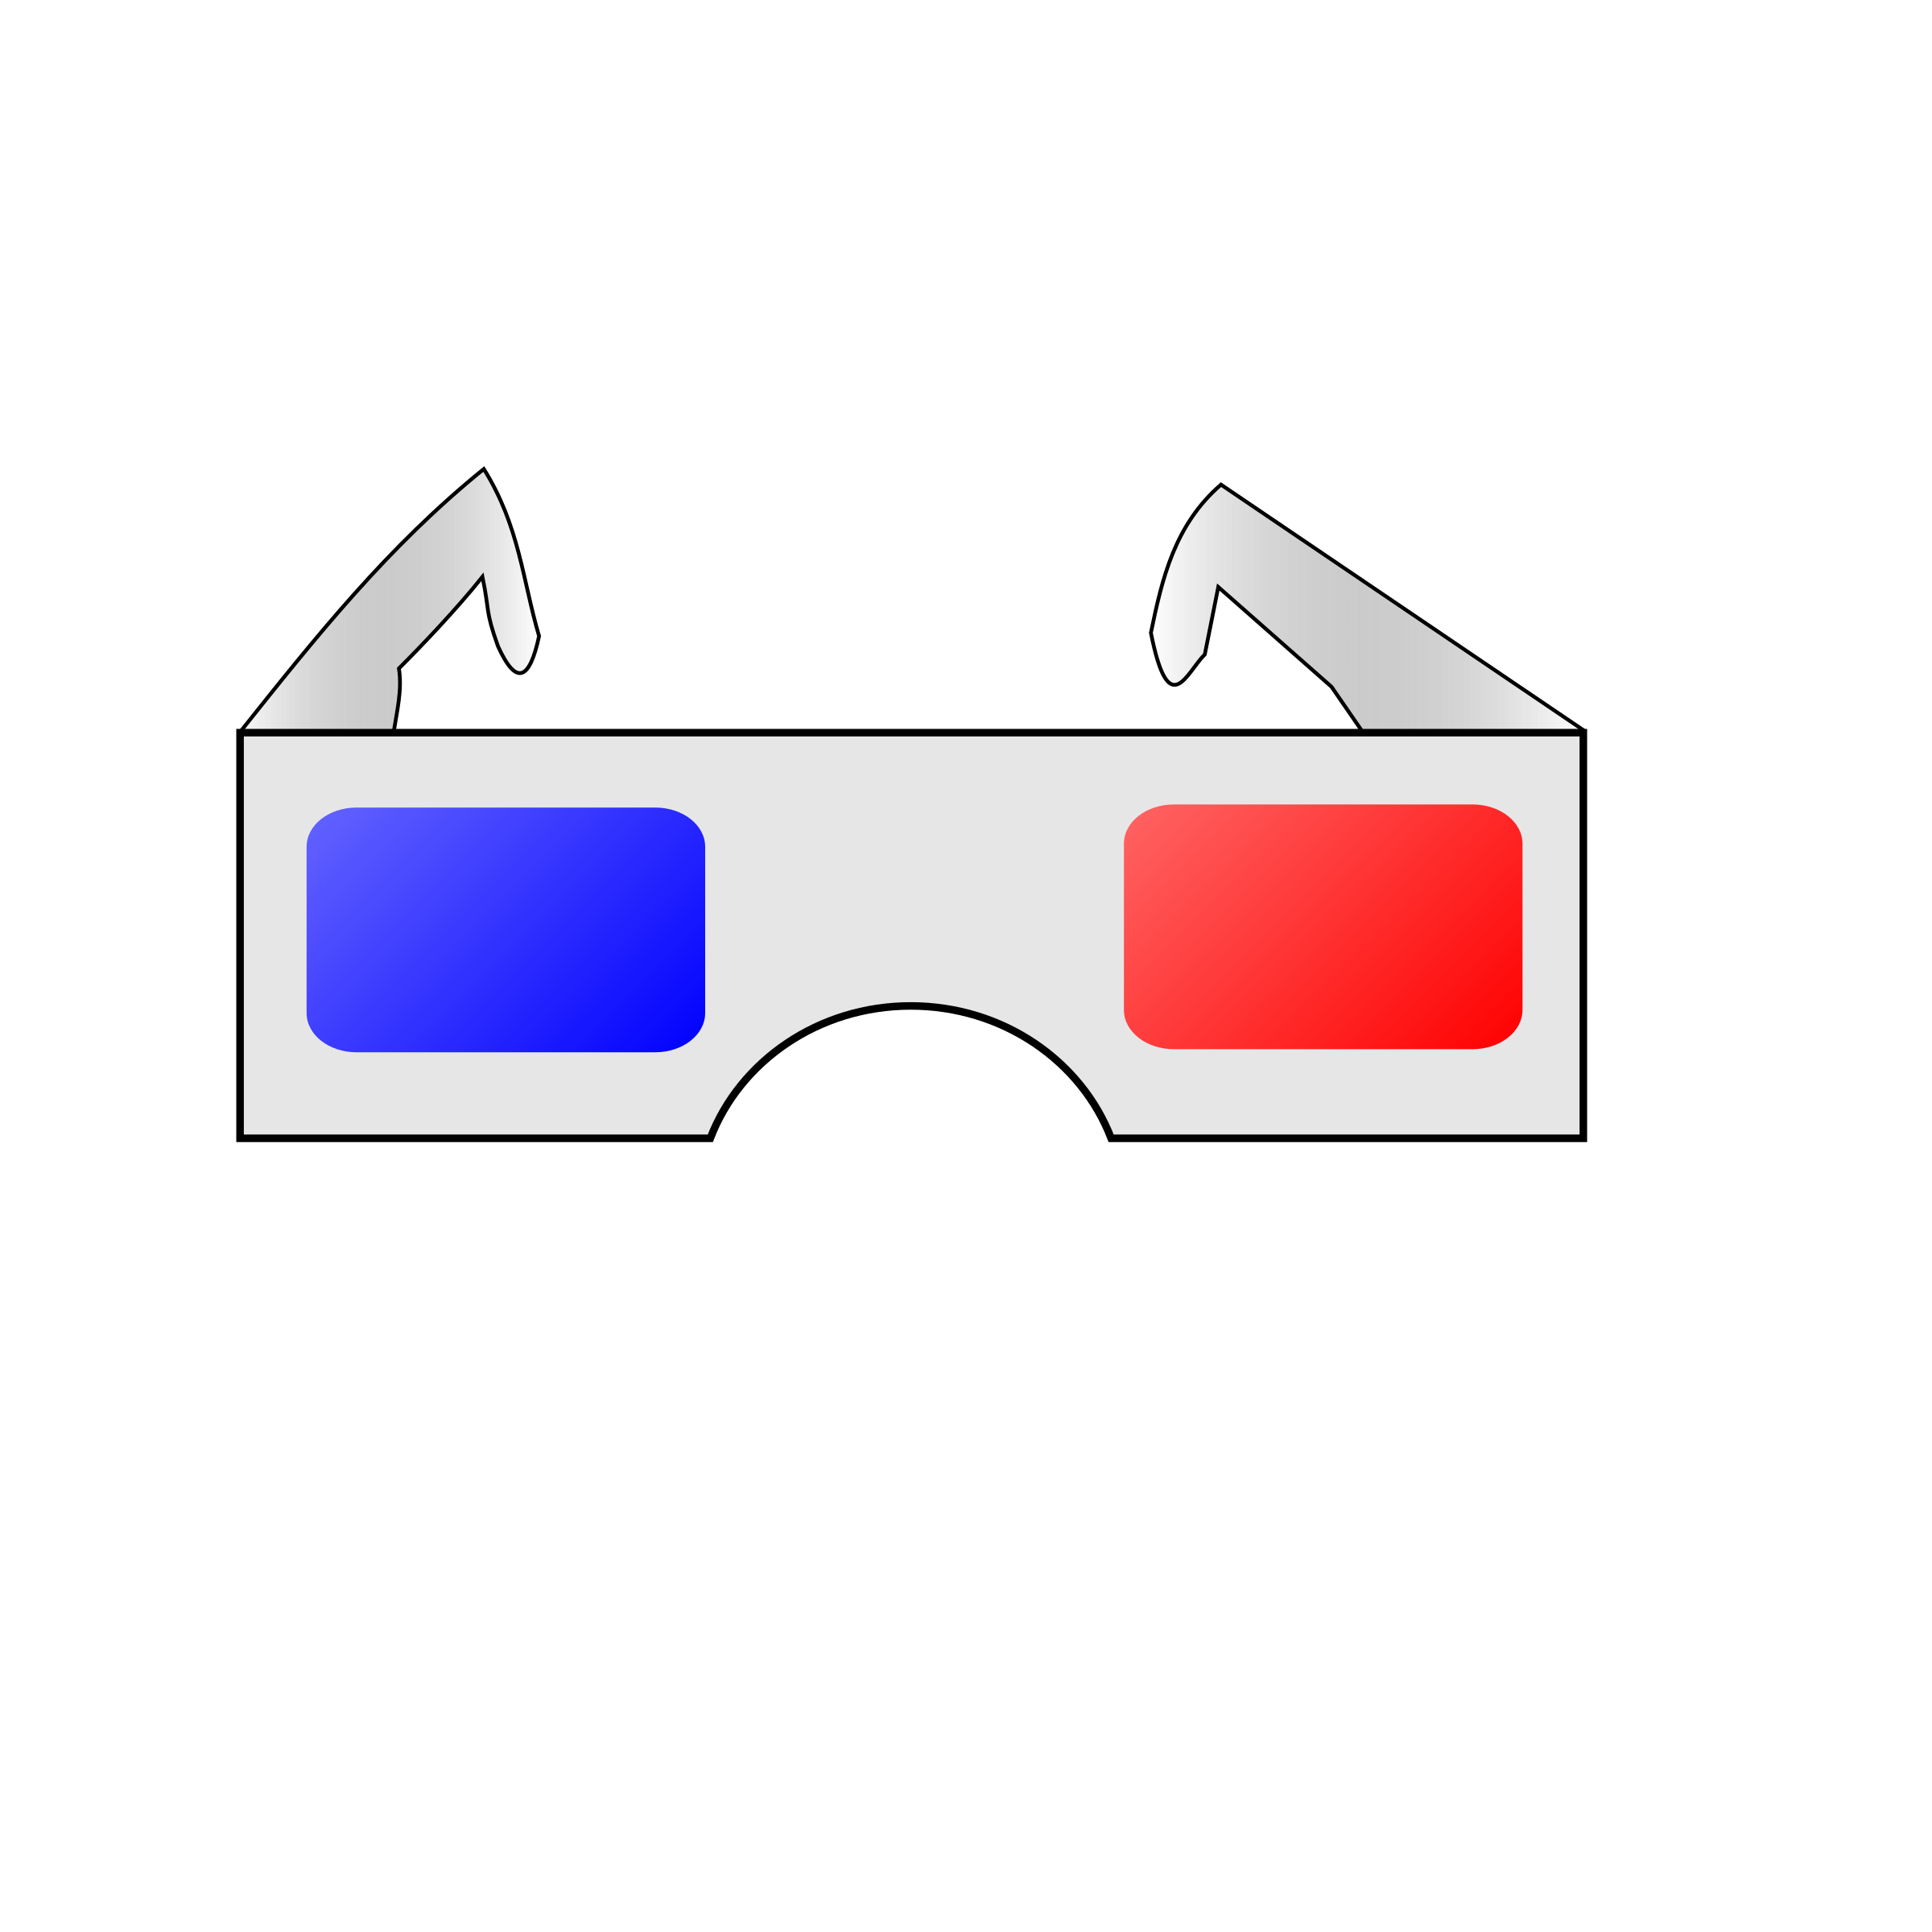 3D Glasses by marricklip14